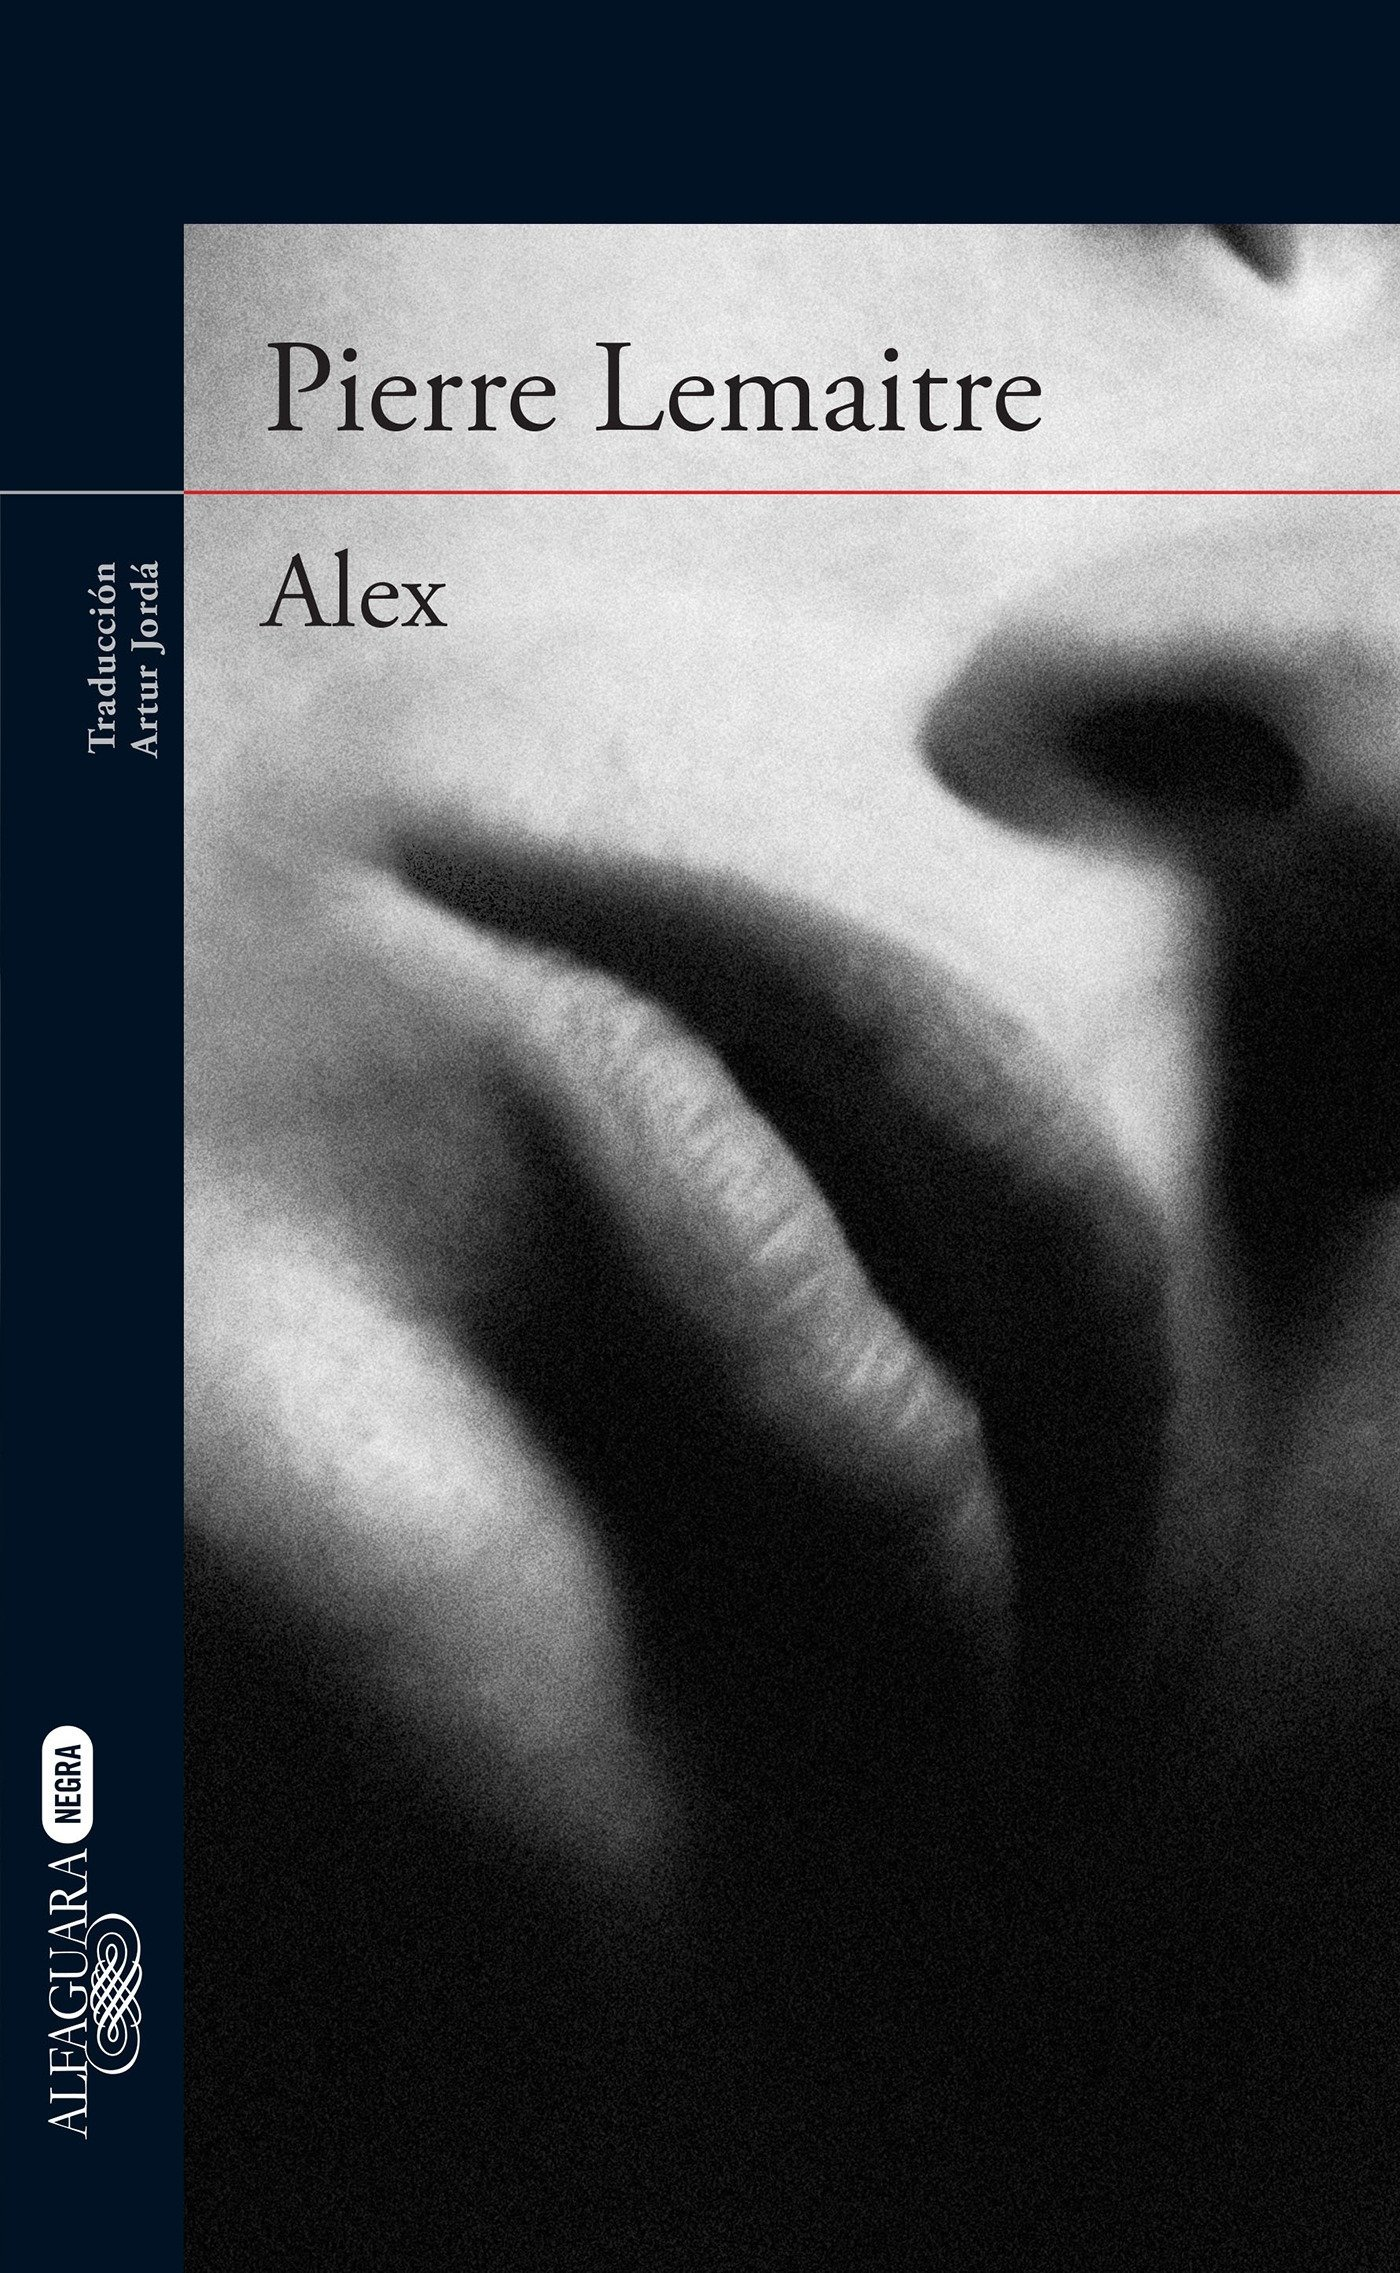 Amazon.com: Alex / In Spanish (Spanish Edition) (9786073138413): Pierre Lemaitre: Books